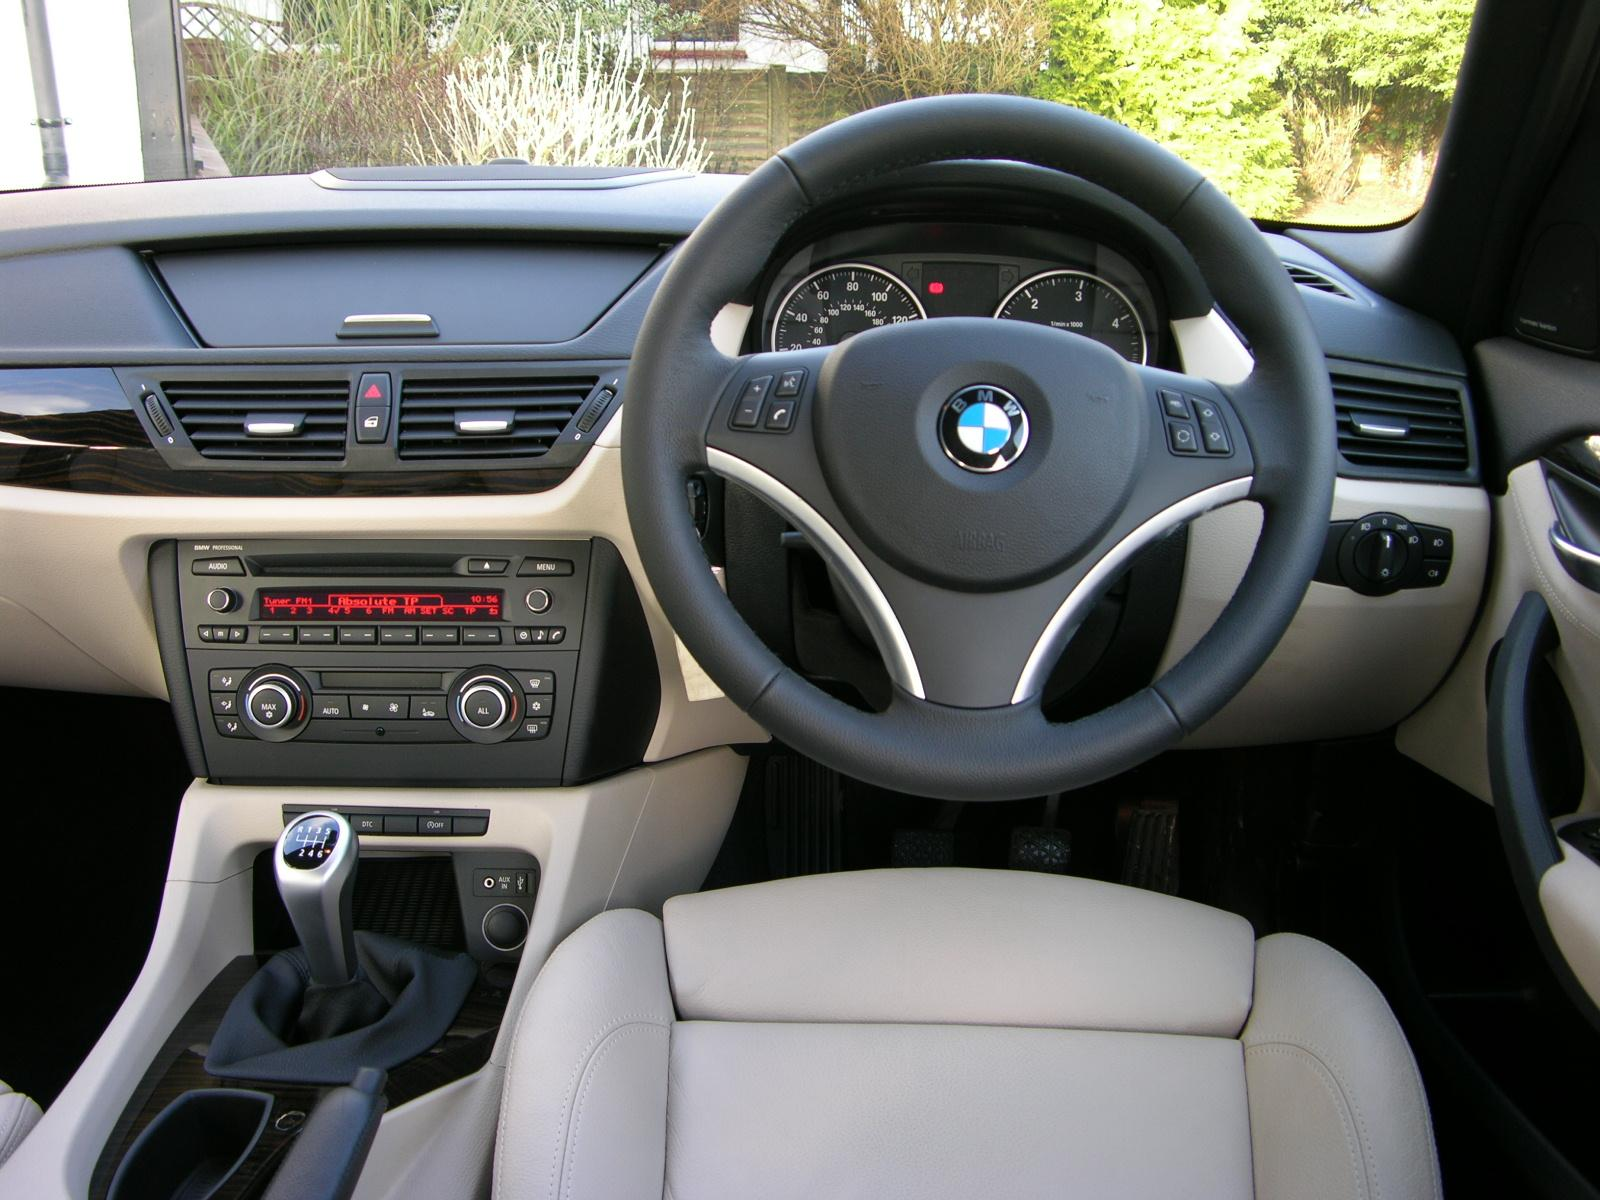 file 2010 bmw x1 sdrive se flickr the car spy 6 jpg wikimedia commons. Black Bedroom Furniture Sets. Home Design Ideas